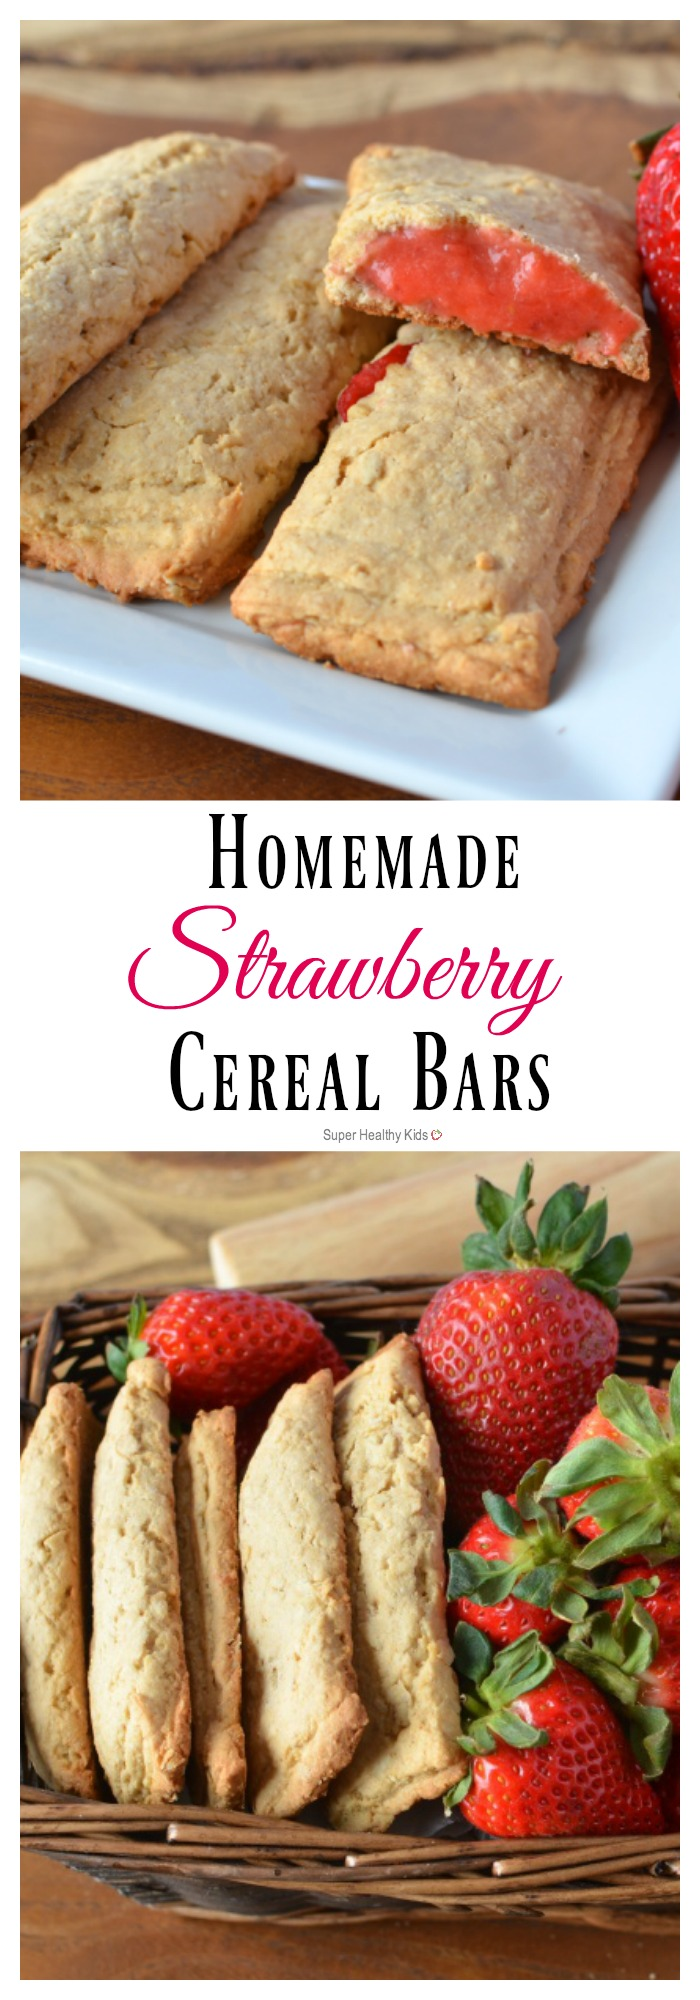 homemade strawberry cereal bars recipe healthy ideas for